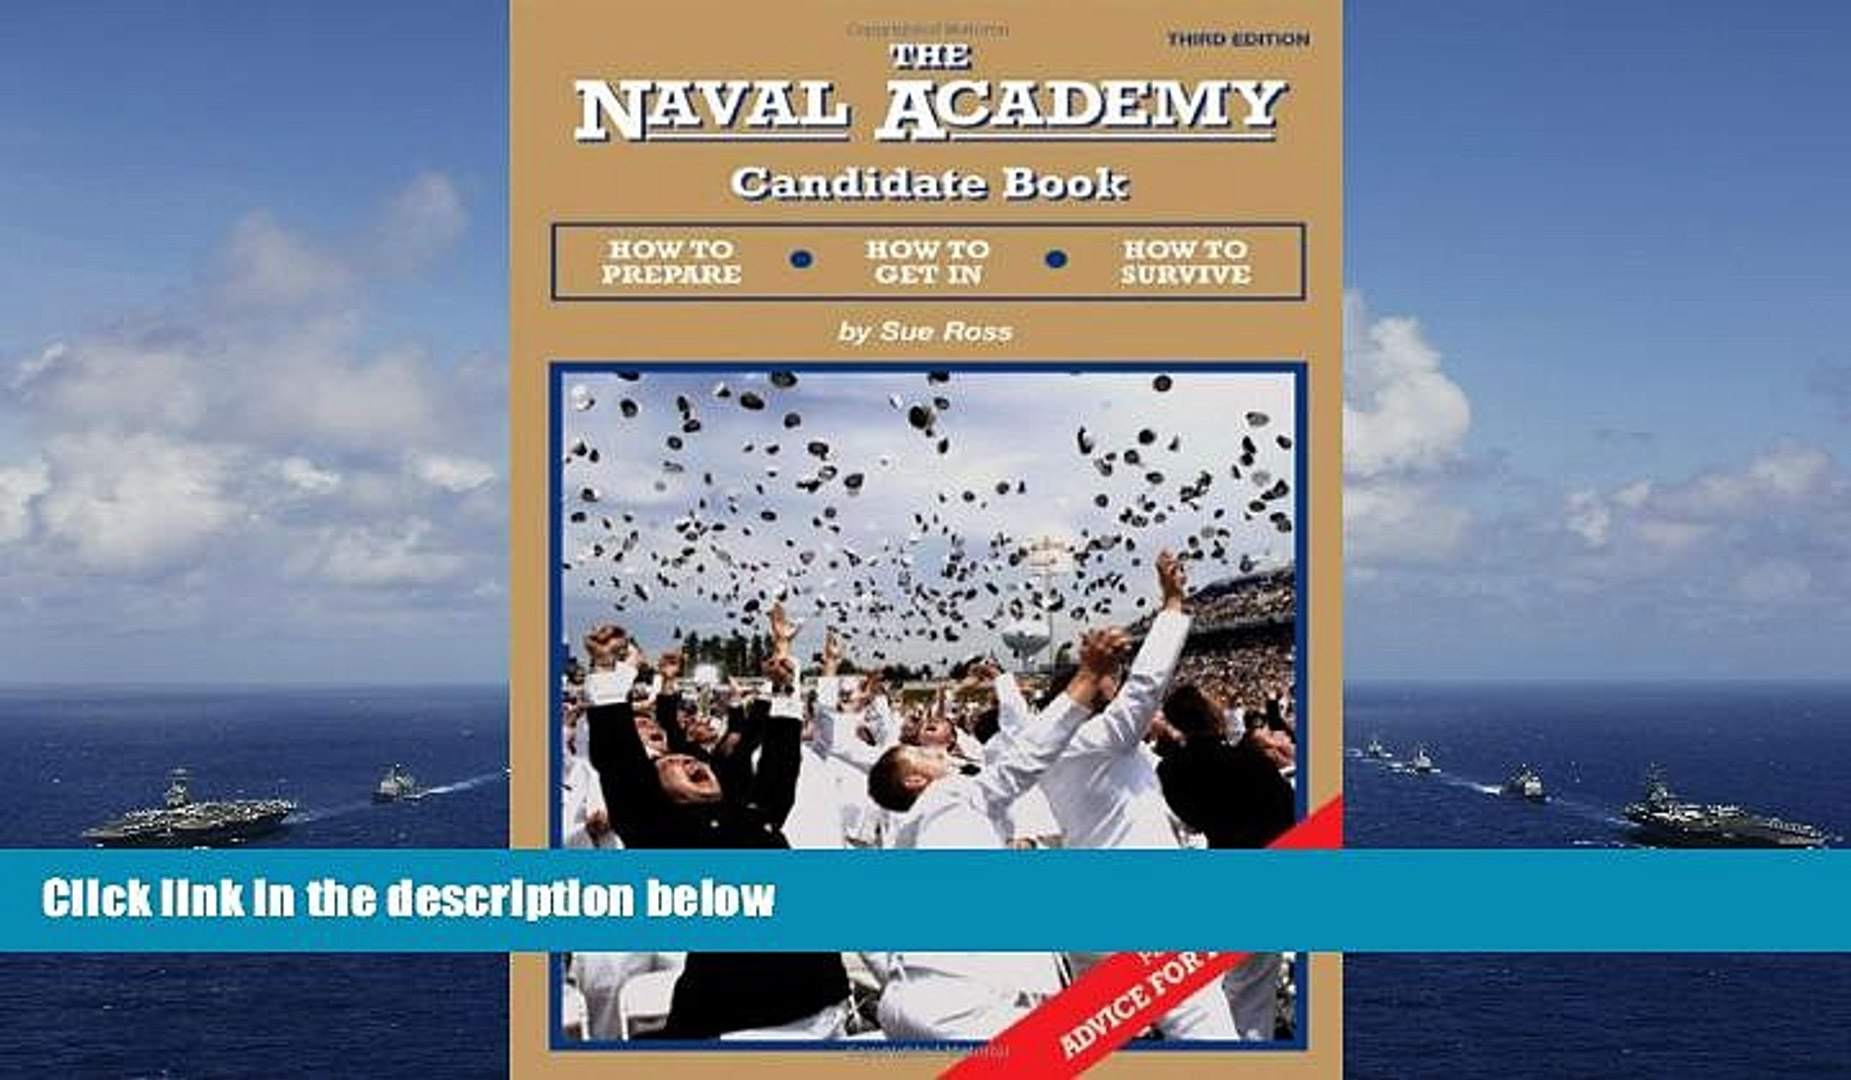 Download [PDF]  The Naval Academy Candidate Book:  How to Prepare, How to Get In, How to Survive